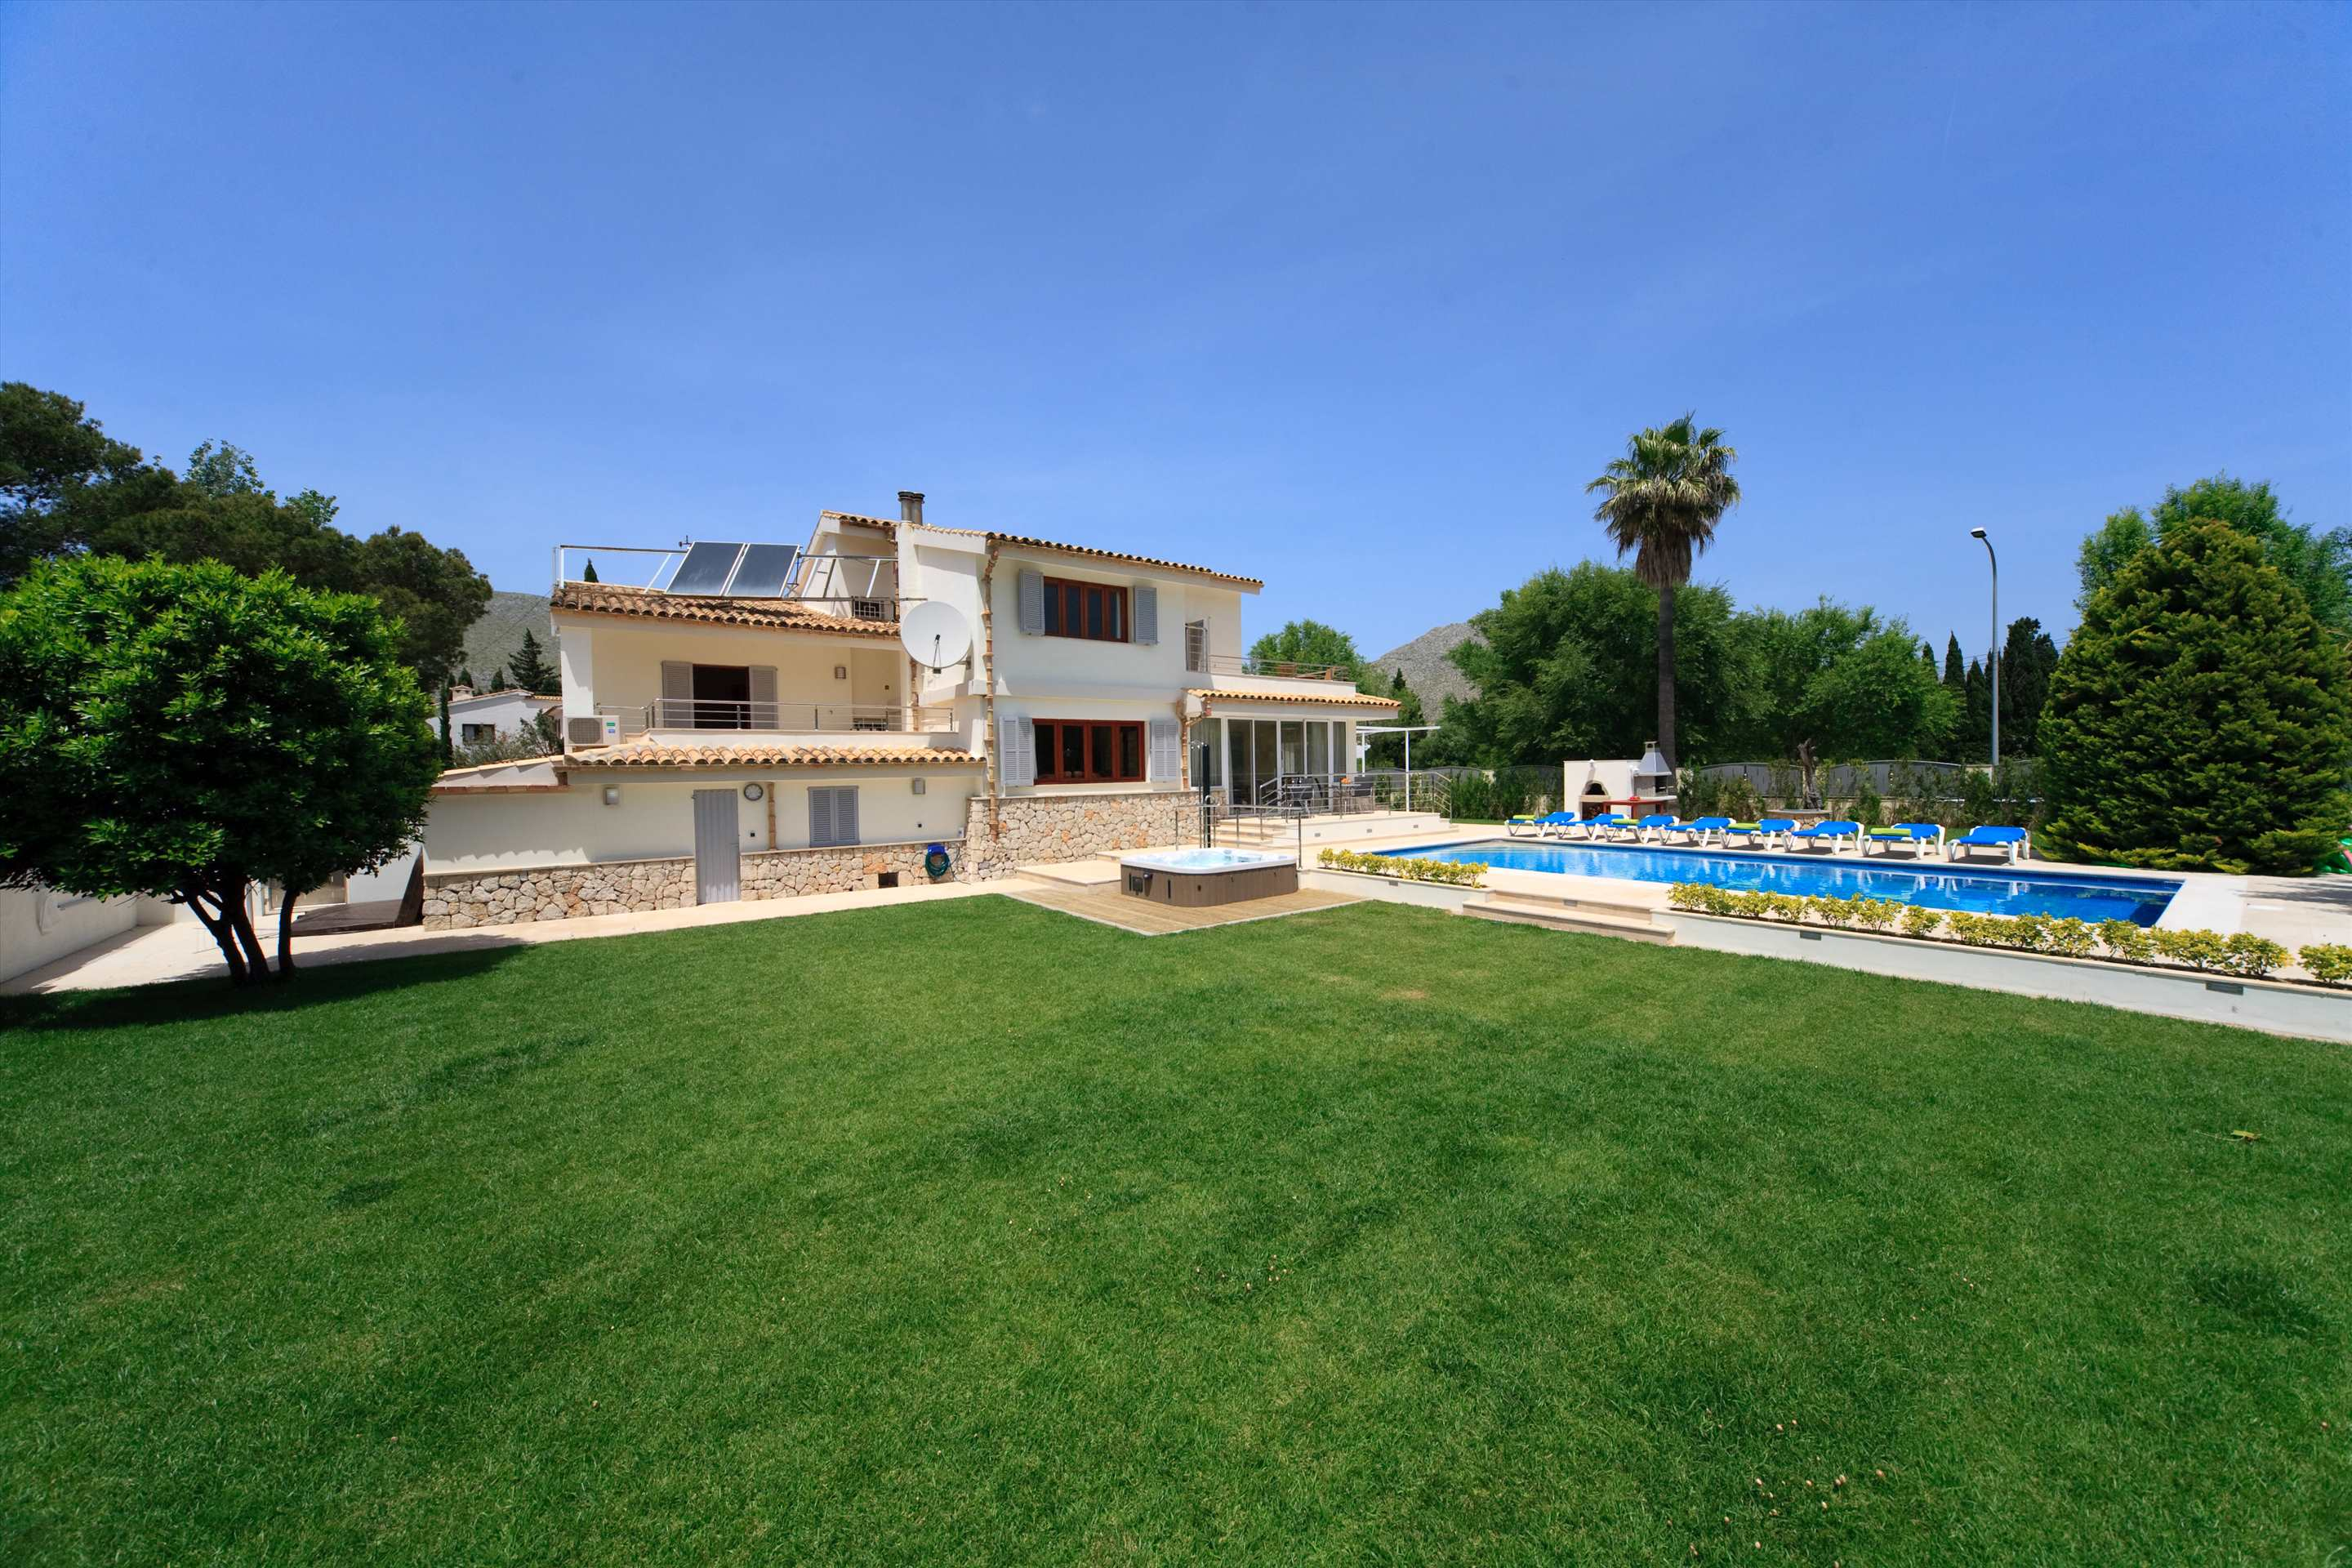 Villa Ca'n Barbas, 4 bedroom villa in Pollensa & Puerto Pollensa , Majorca Photo #22